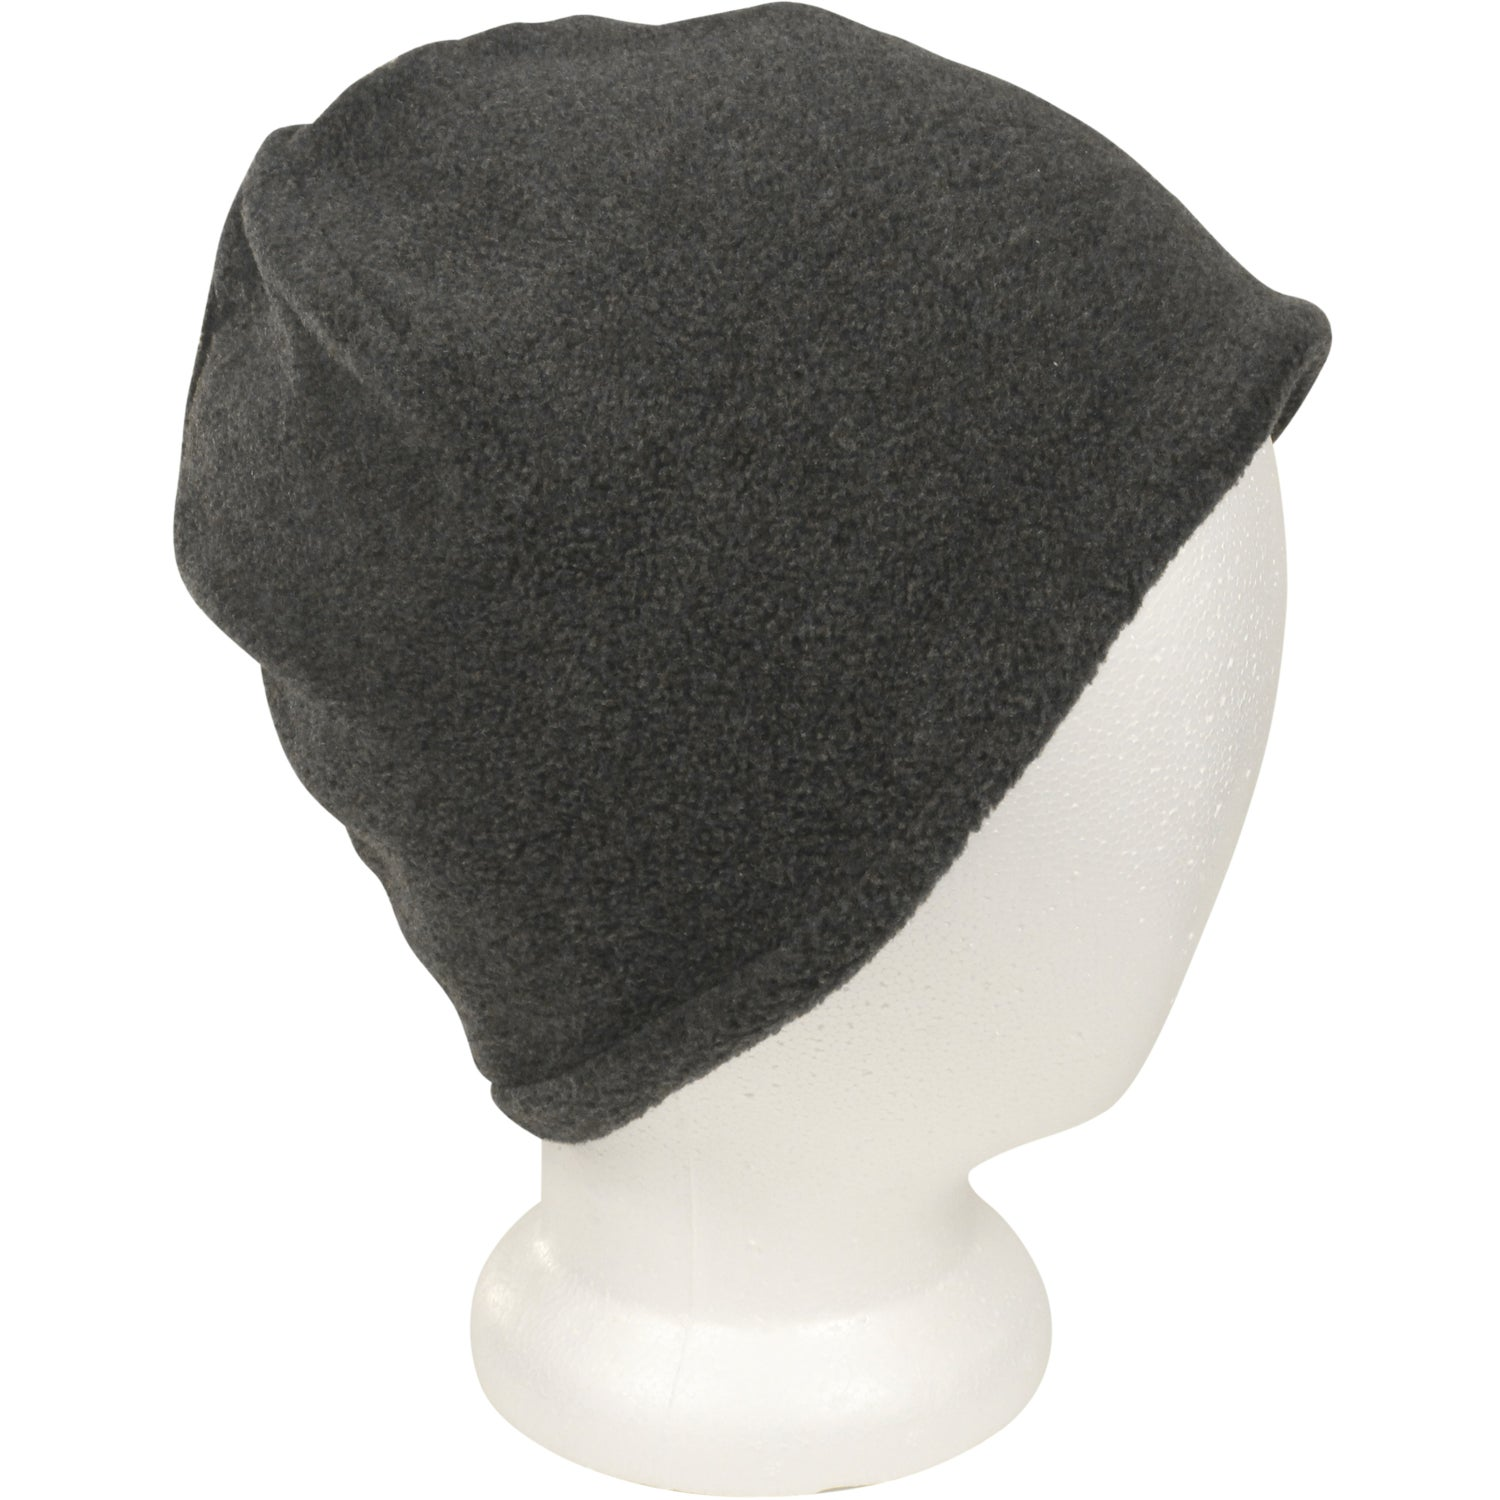 low priced 96d92 3ace2 CLICK HERE to Order Double Layer Fleece Beanies Printed with Your Logo for   3.02 Ea.